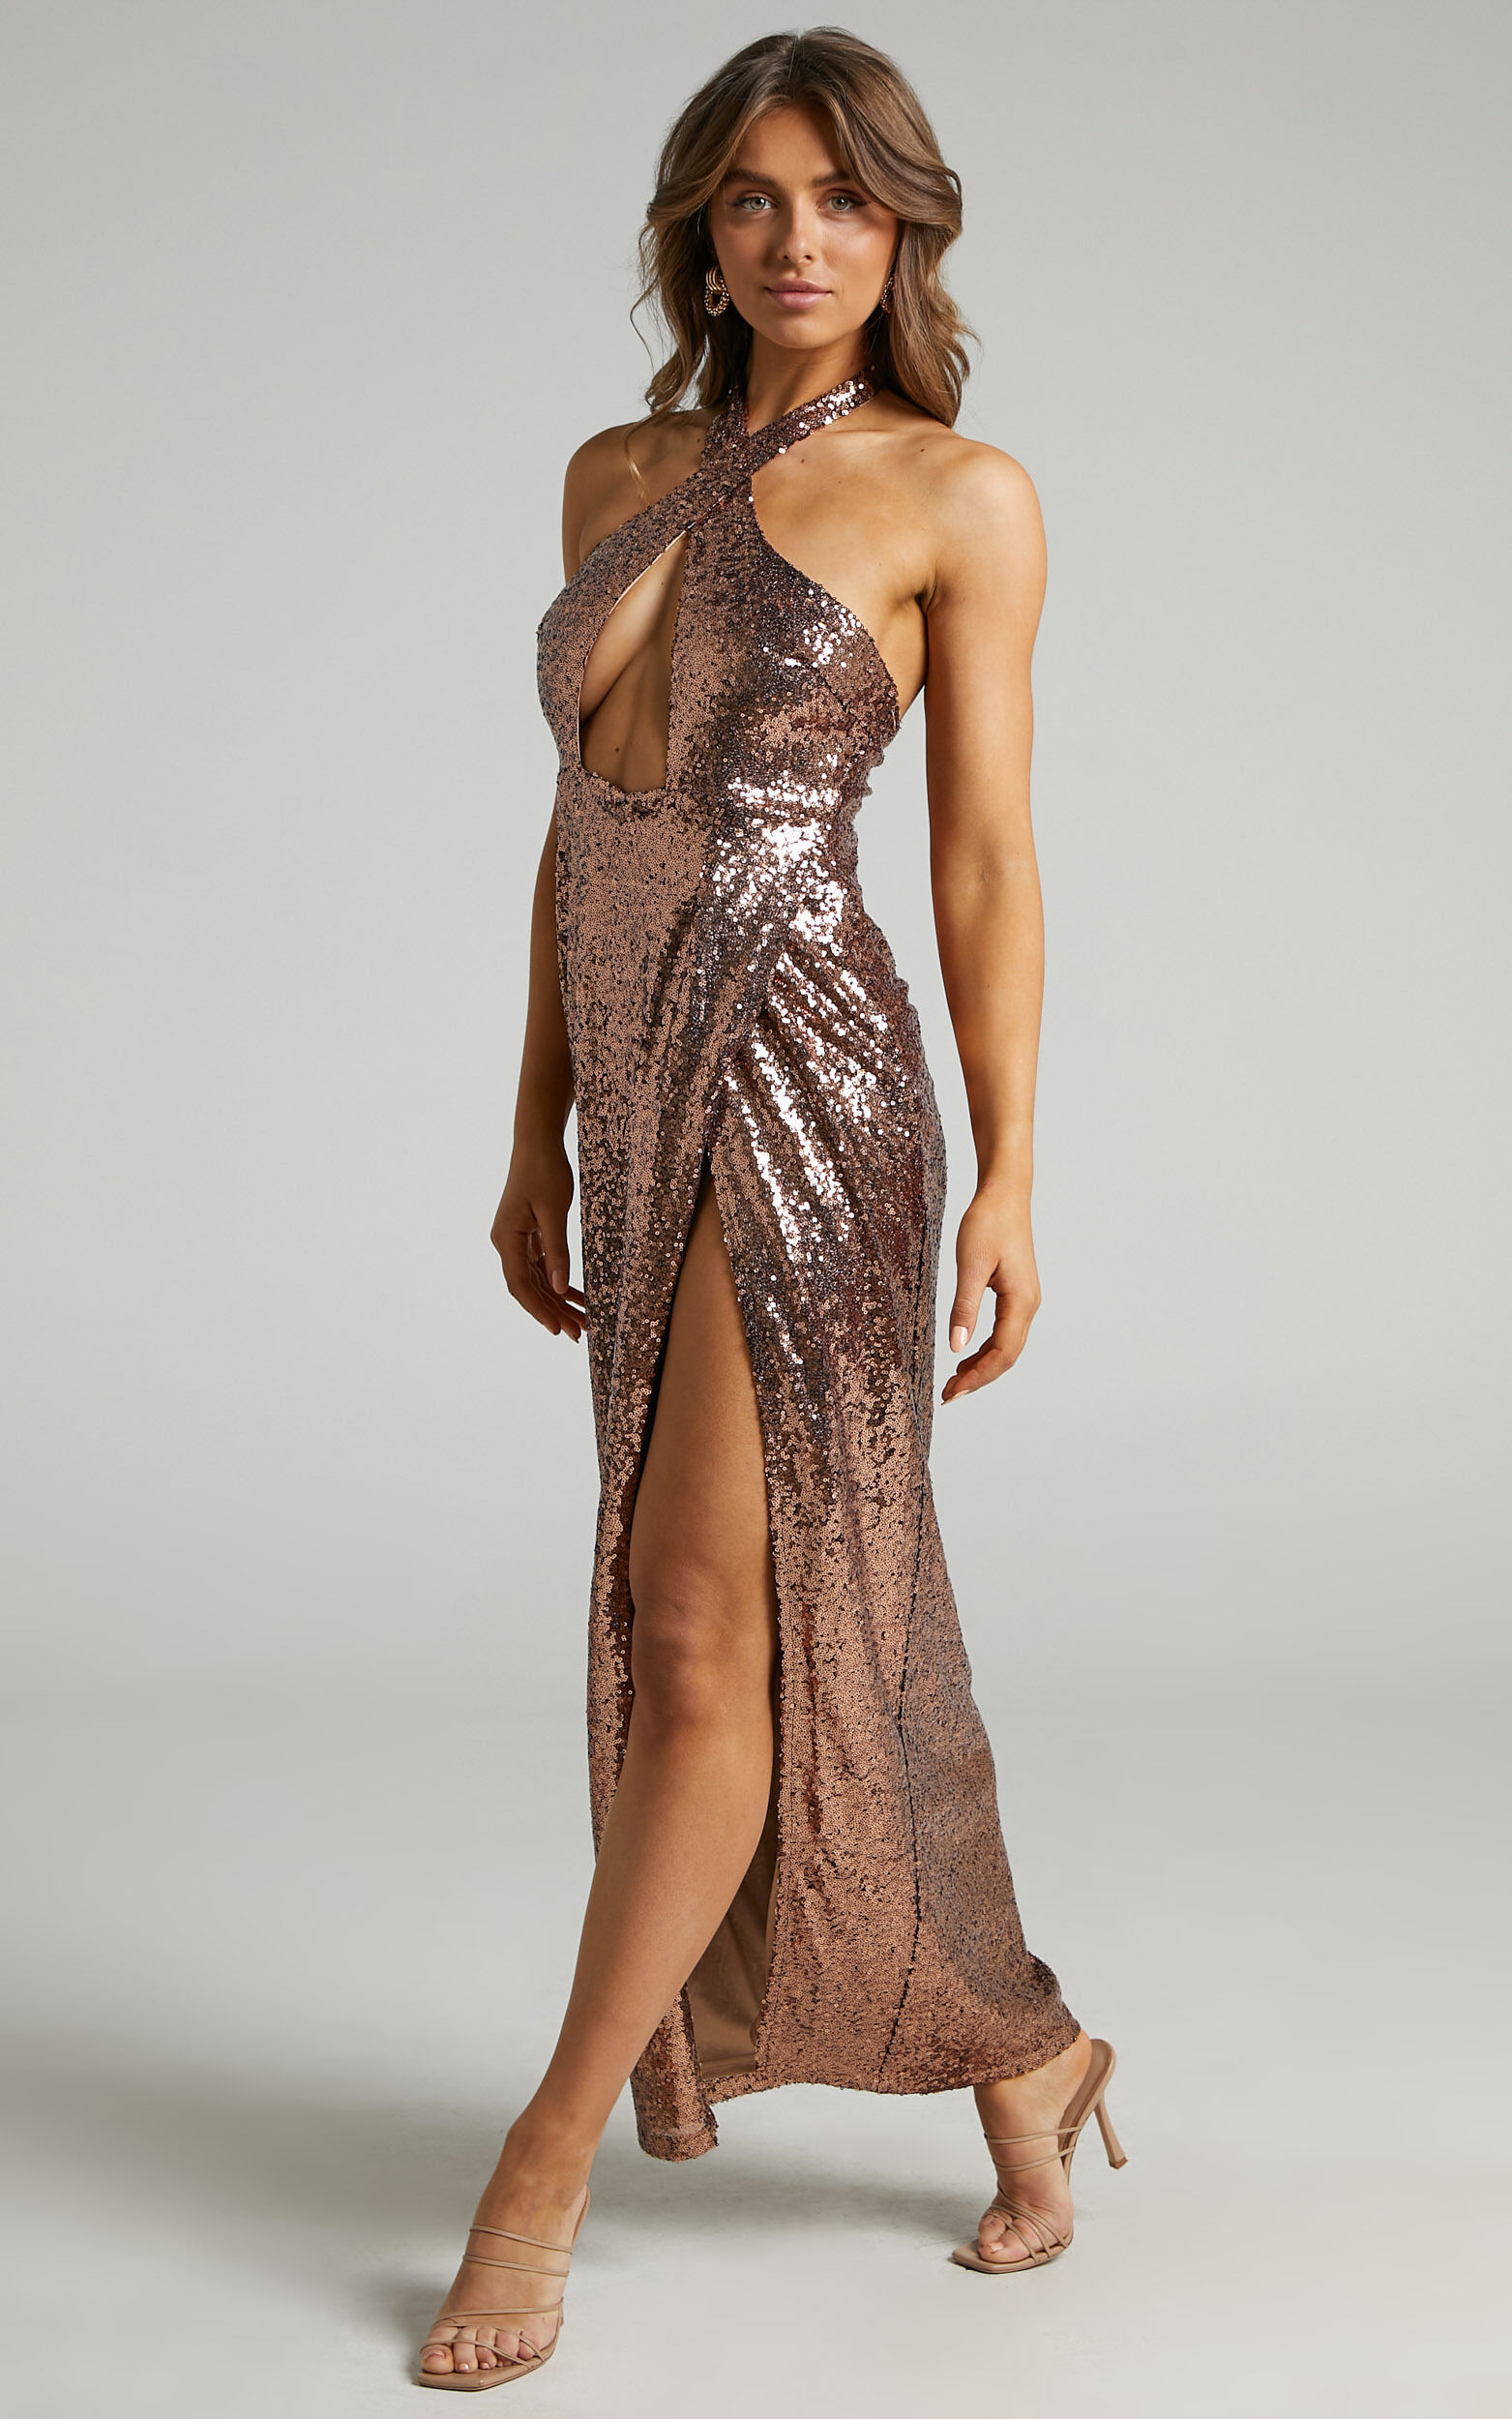 Cansas Halterneck Cut Out Maxi Dress in Chocolate Sequin - 06, BRN1, super-hi-res image number null